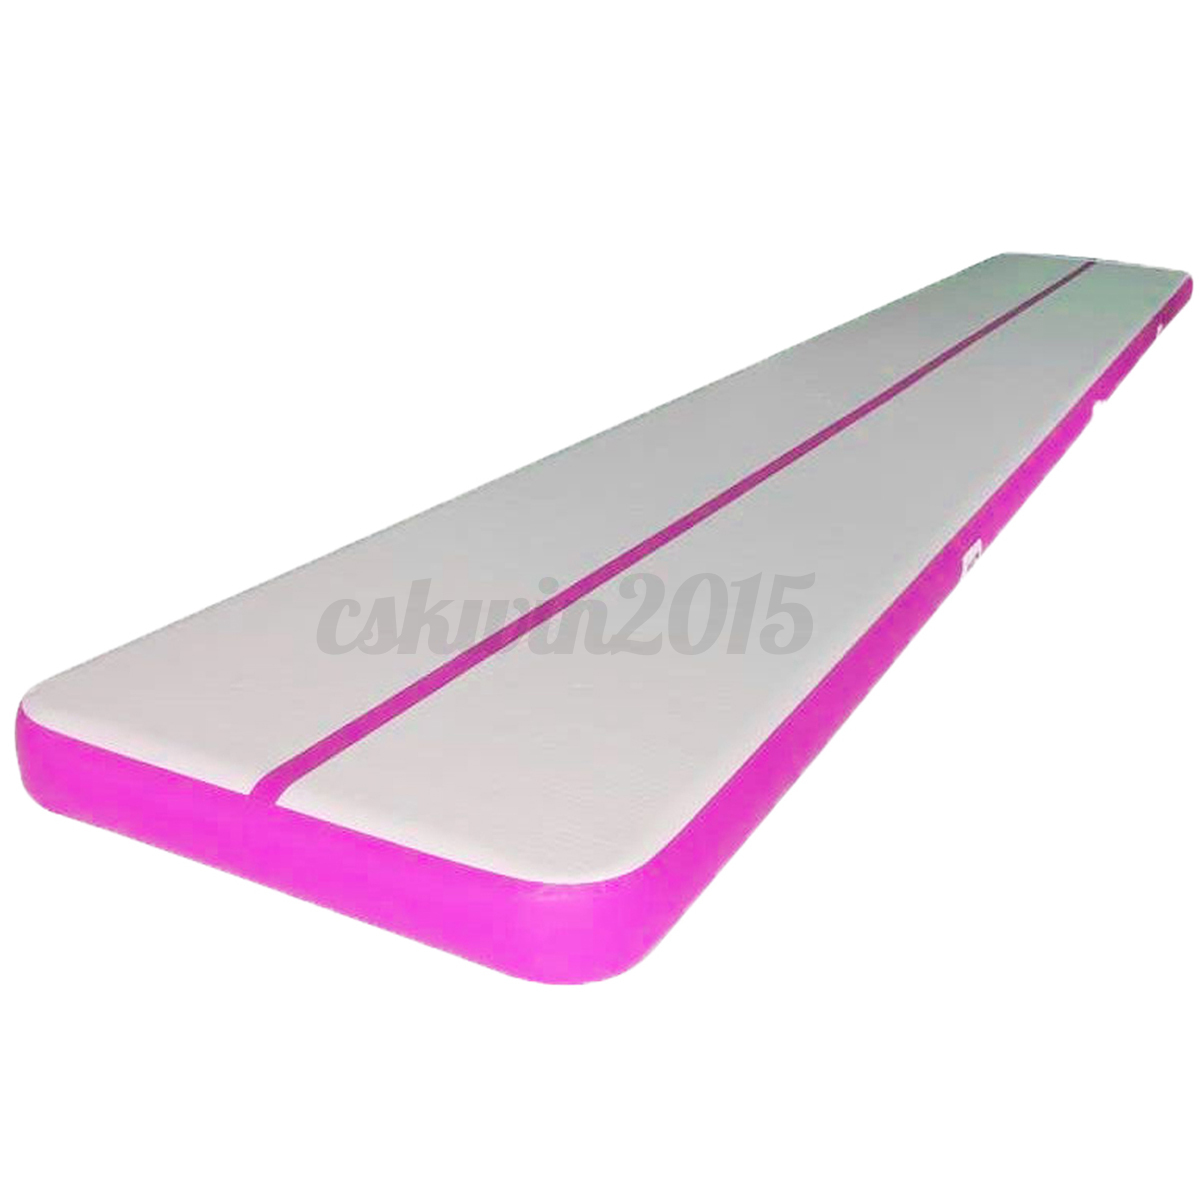 pink mats ebay mat s purple yoga gym aerobics itm gymnastics exercise tumbling folding